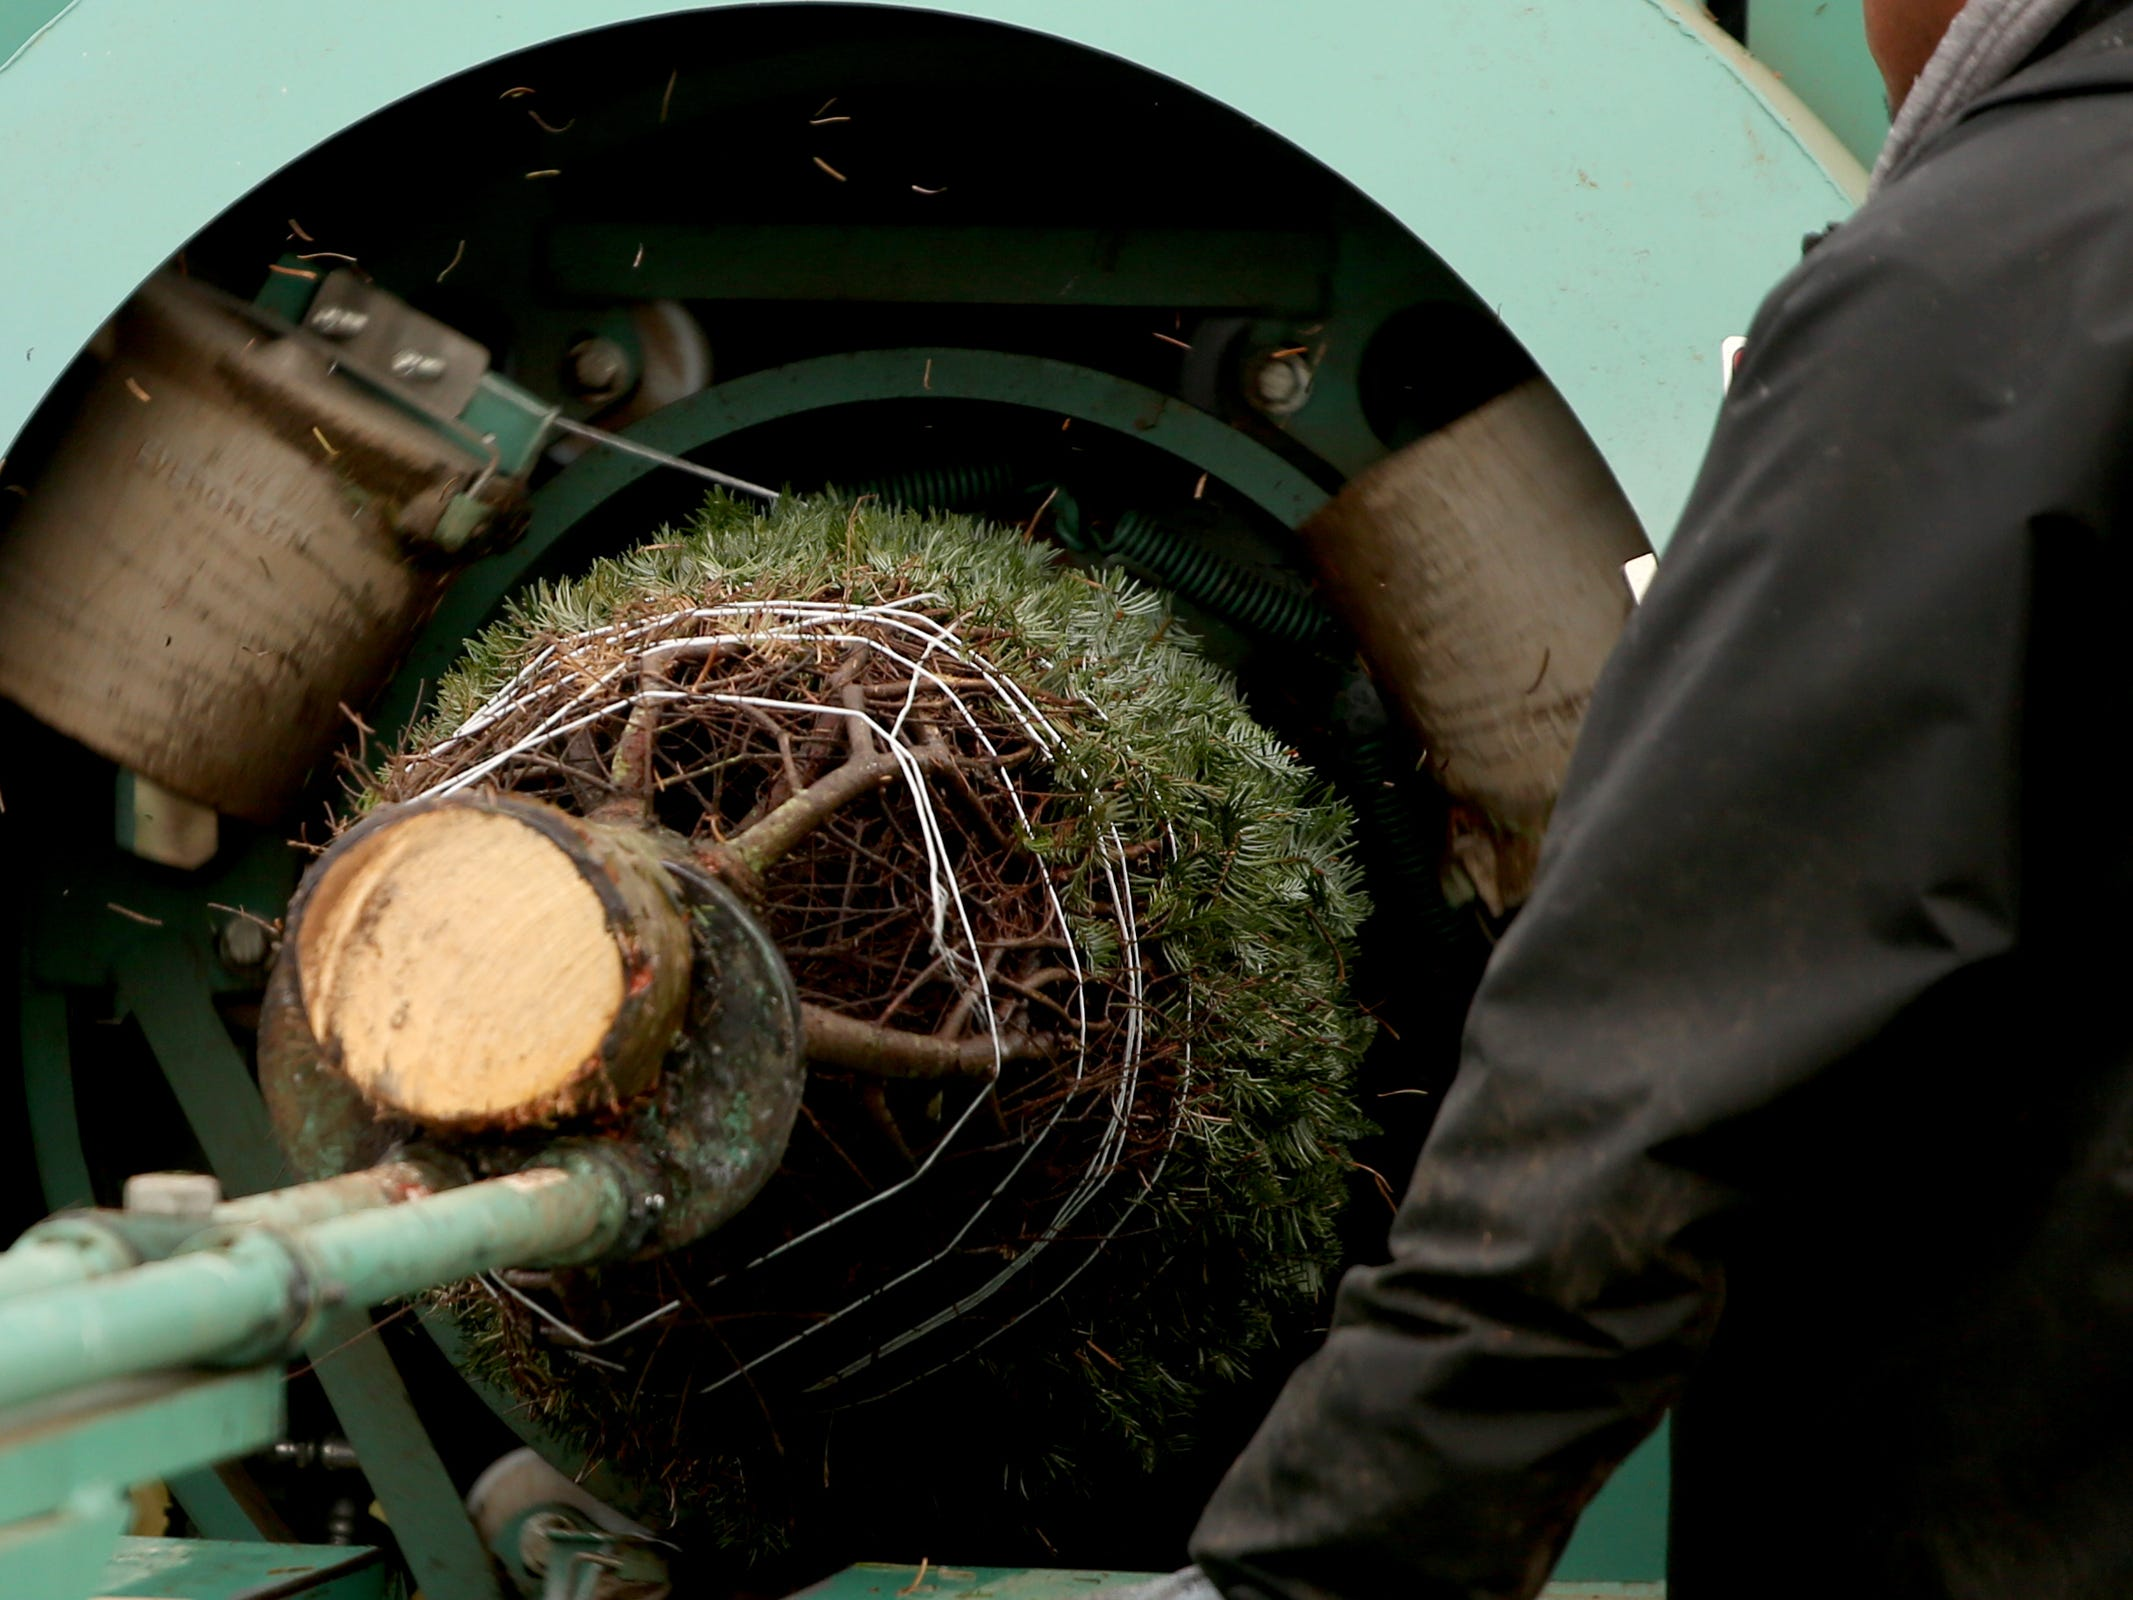 A Christmas tree goes through a baler at Hupp Farms near Silverton on Monday, Nov. 5, 2018.